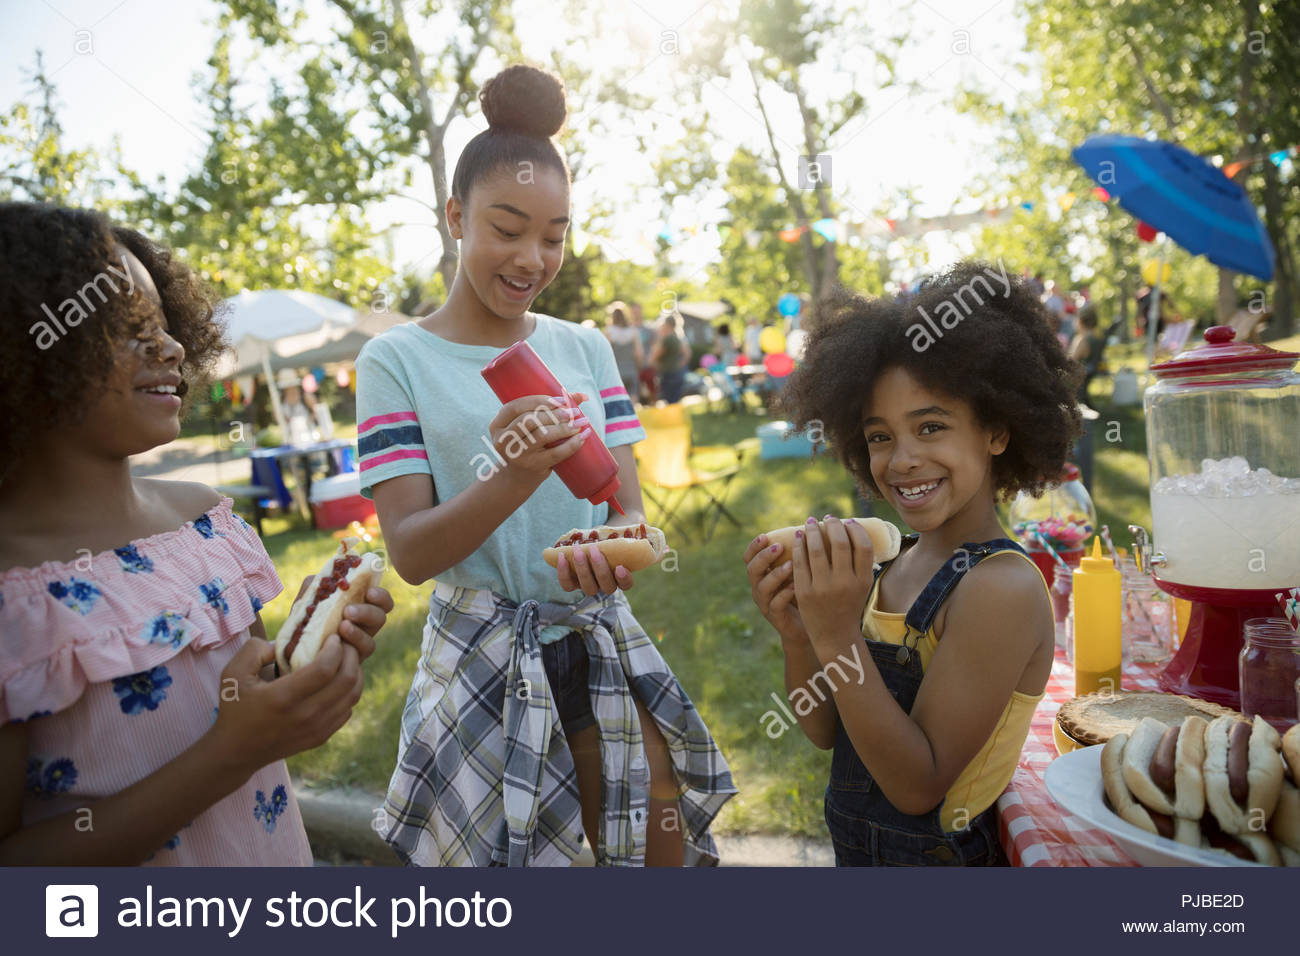 Sisters eating hot dogs at summer neighborhood block party in park Stock Photo